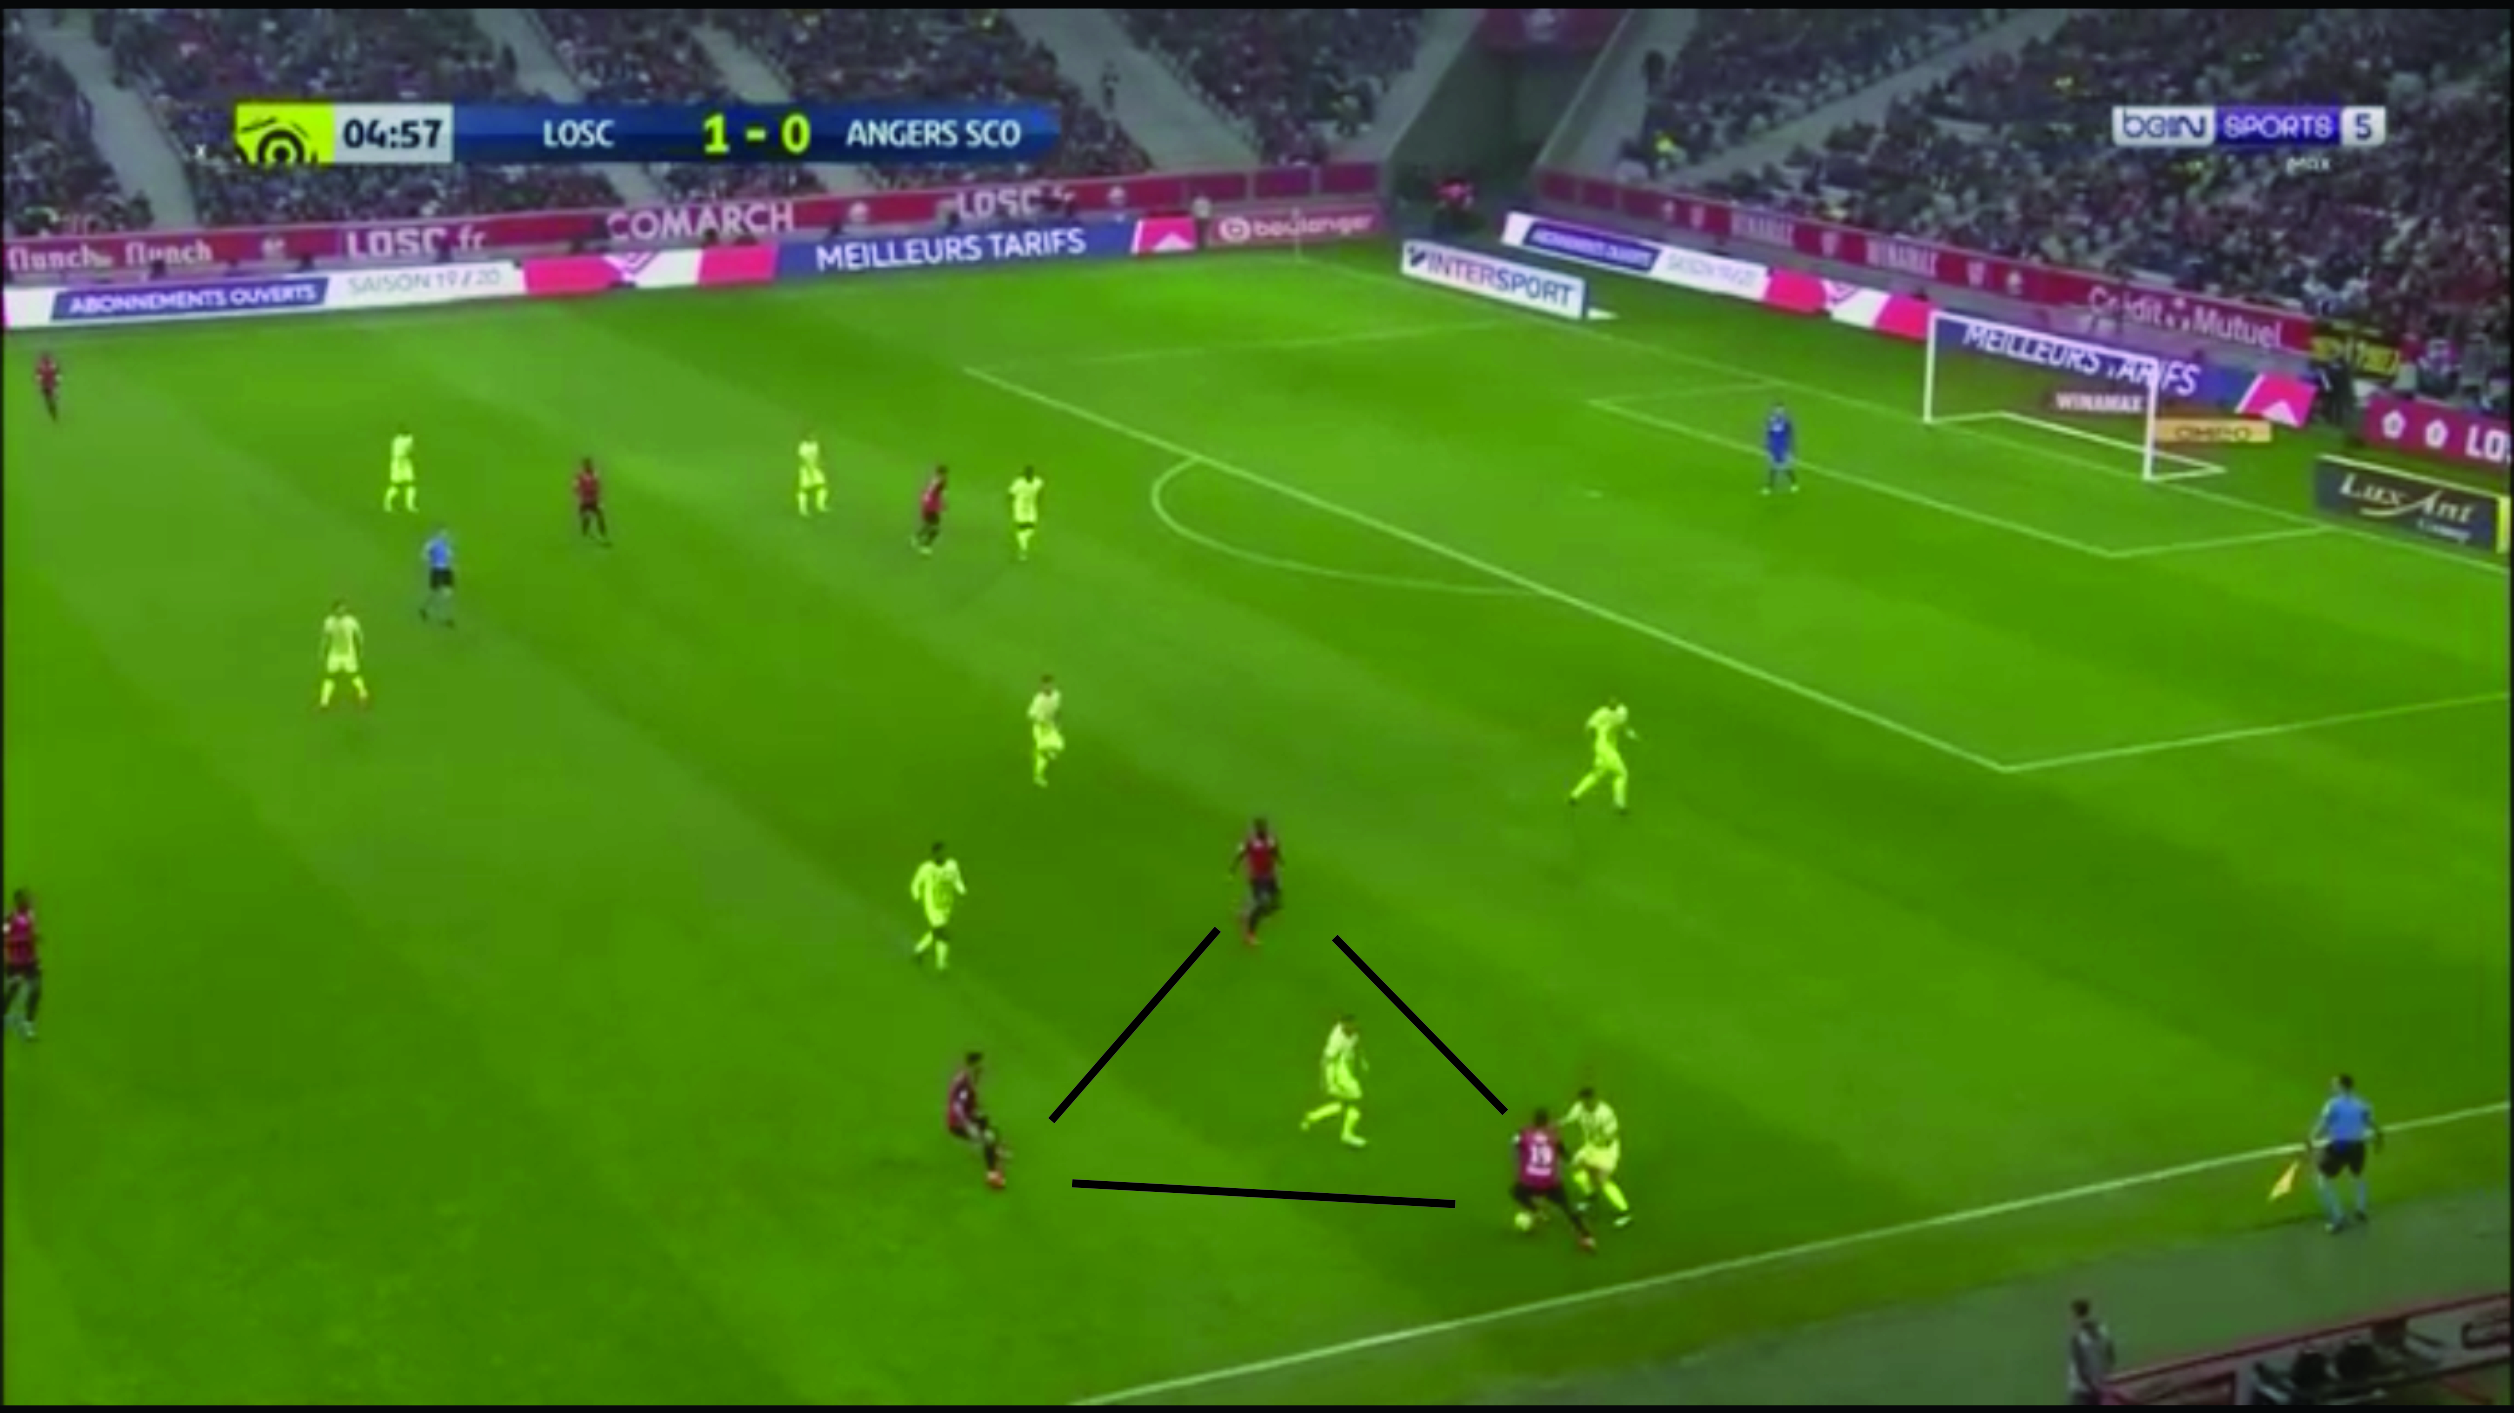 Ligue 1 2018/19 Tactical Analysis: Christophe Galtier at LilleLigue 1 2018/19 Tactical Analysis: Christophe Galtier at Lille